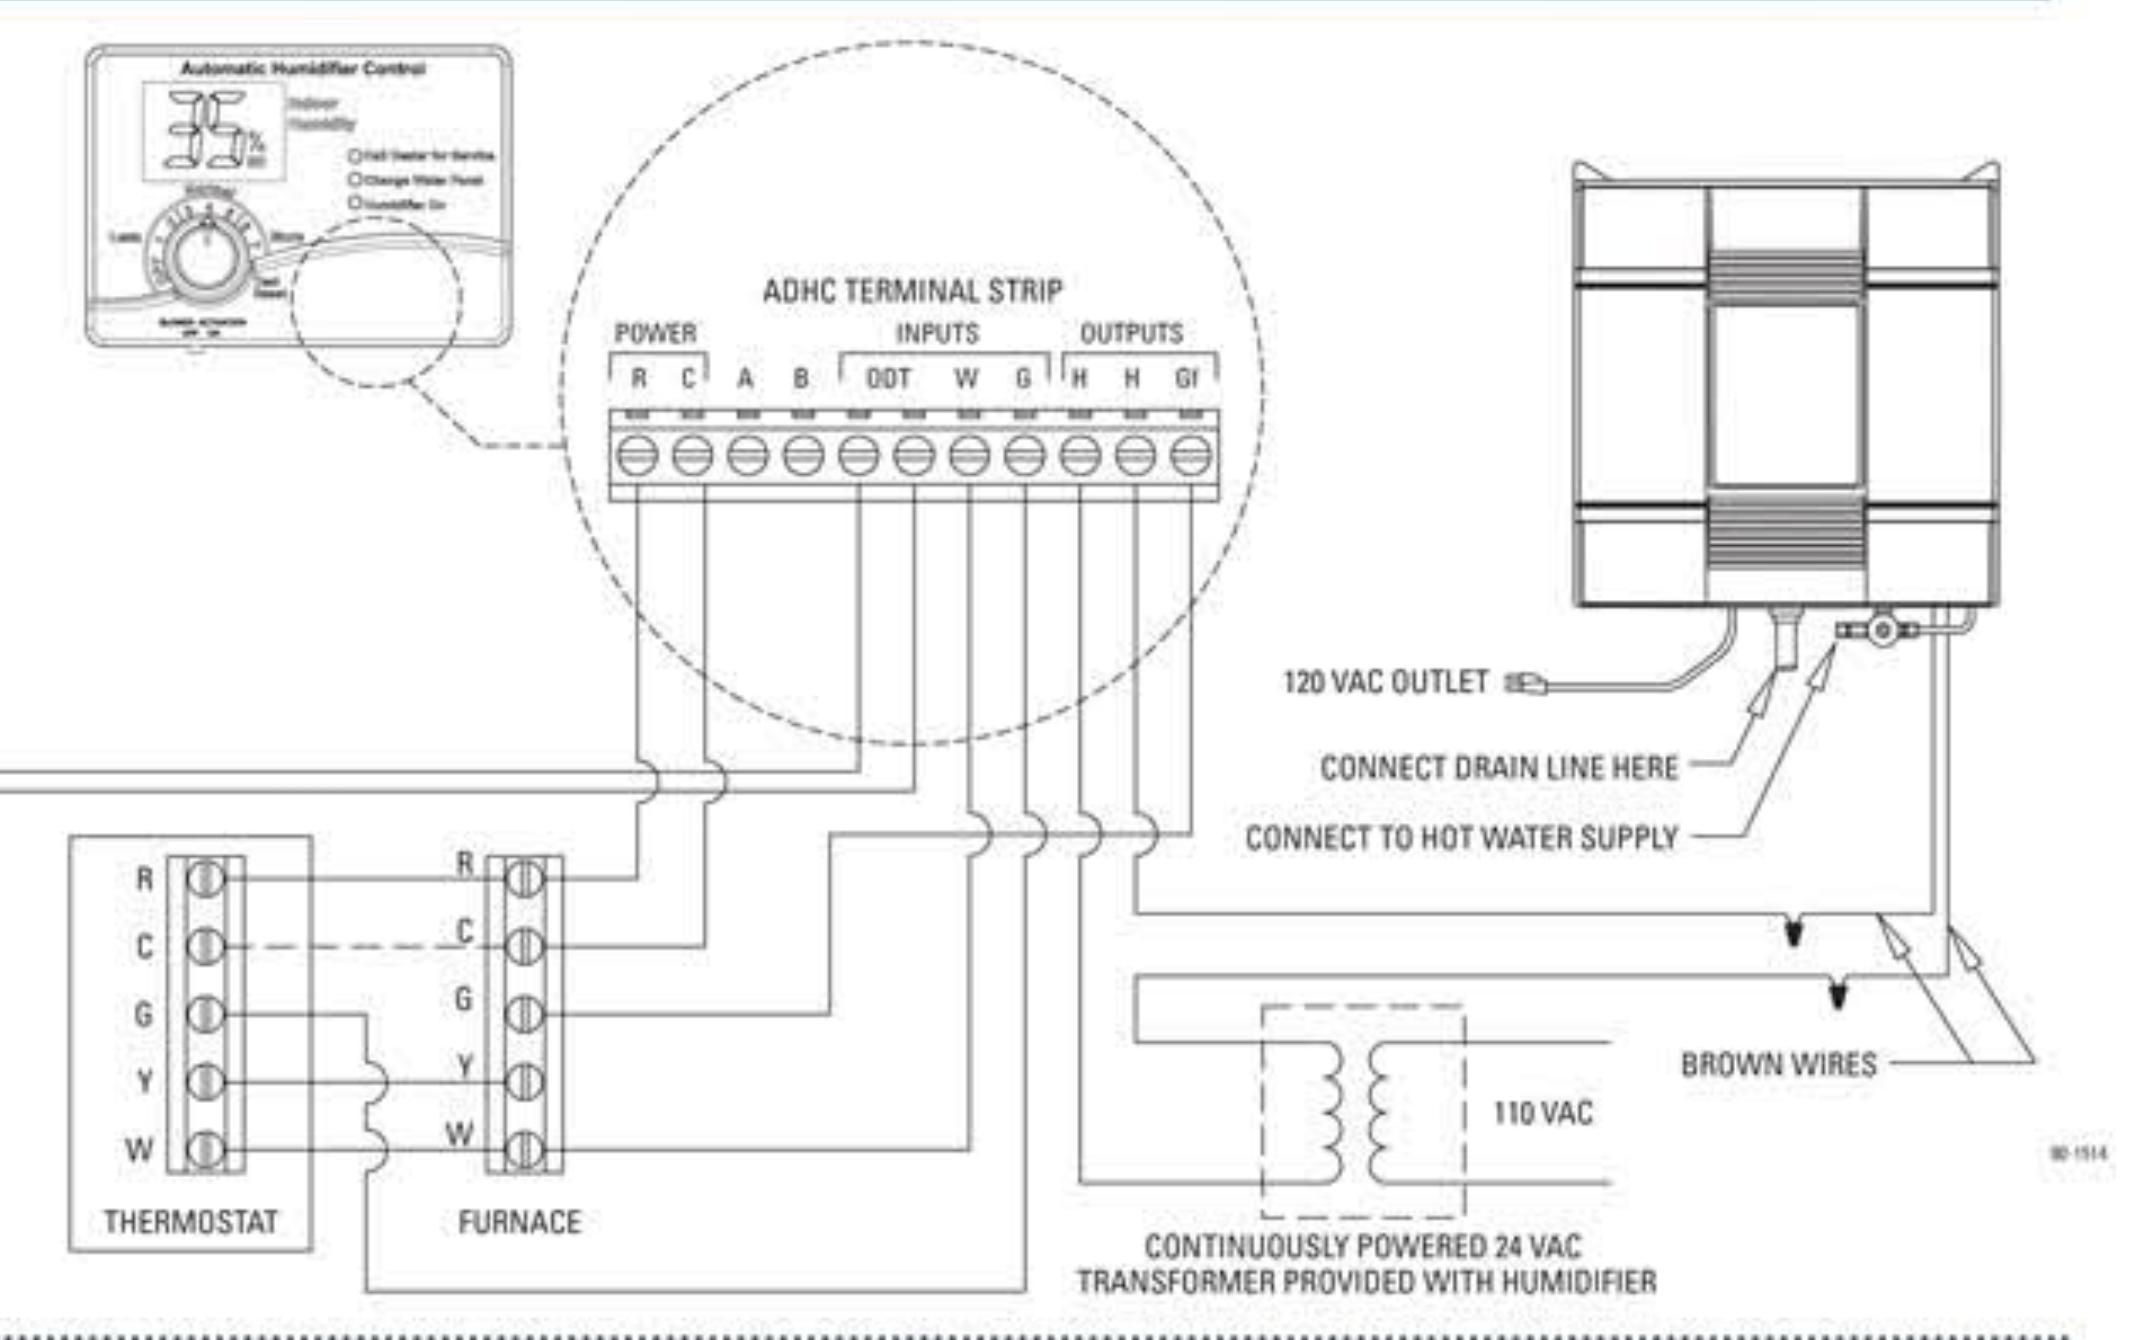 Aprilaire 700 Humidifier Wiring To Furnace | Wiring Diagram - Aprilaire 700 Wiring Diagram Nest